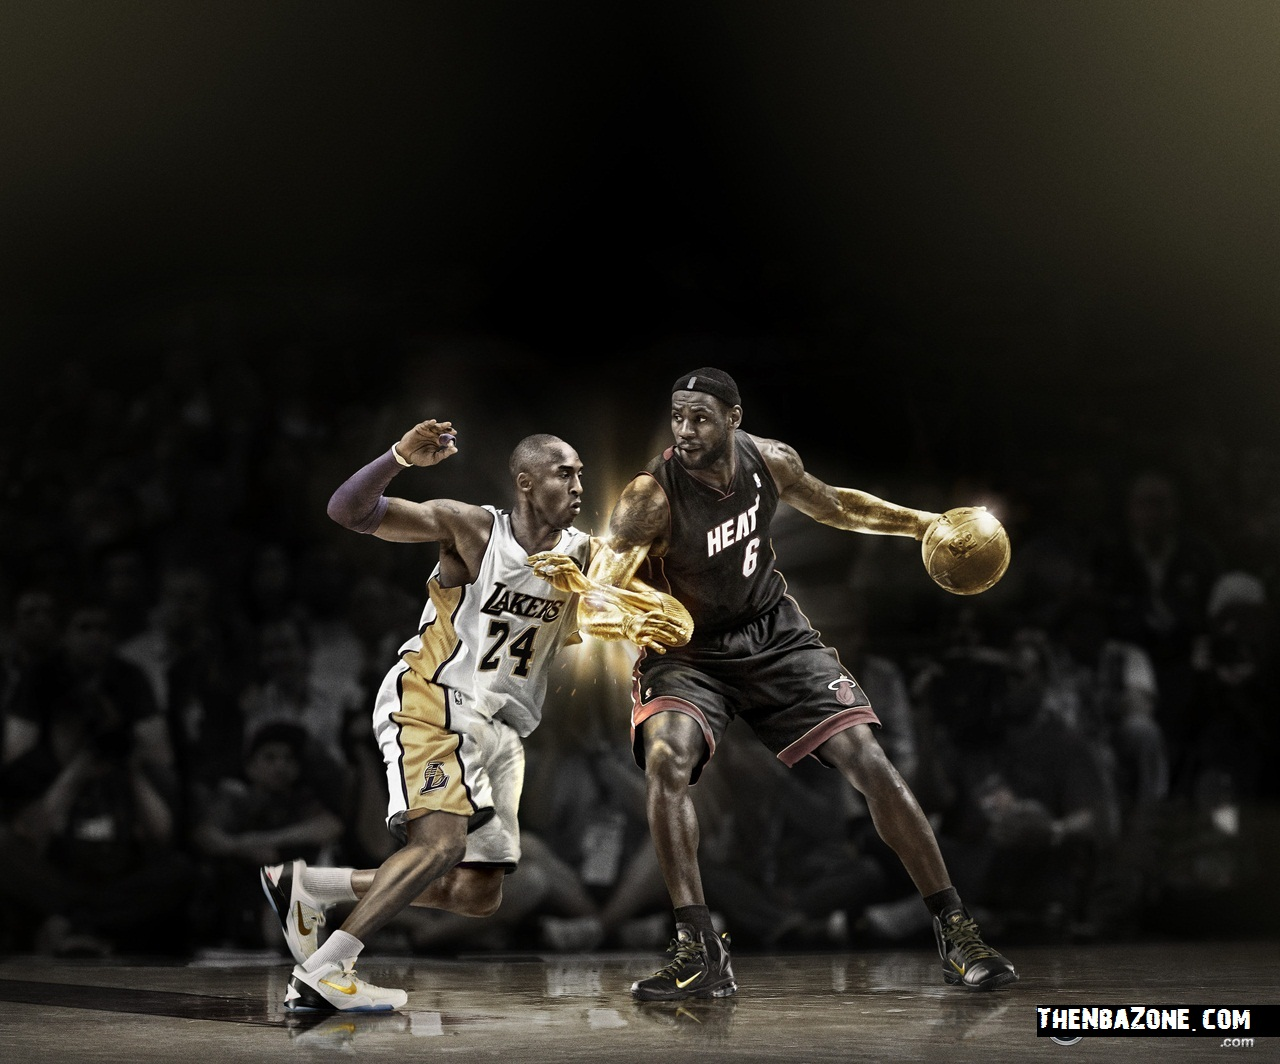 Hd wallpaper nba - Lebron James And Kobe Bryant Nba Payoffs 2012 Hd Wallpaper